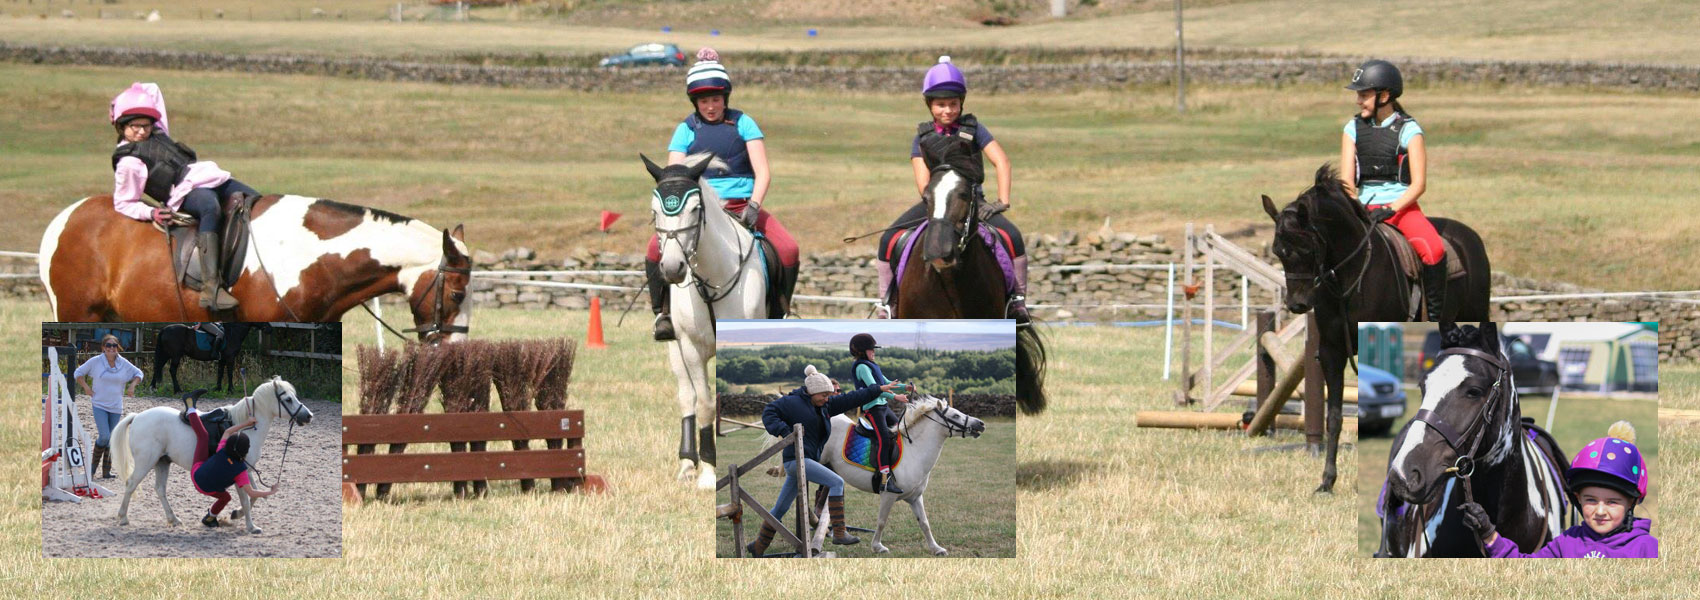 Penistone & District Riding Club Summer Tuition week